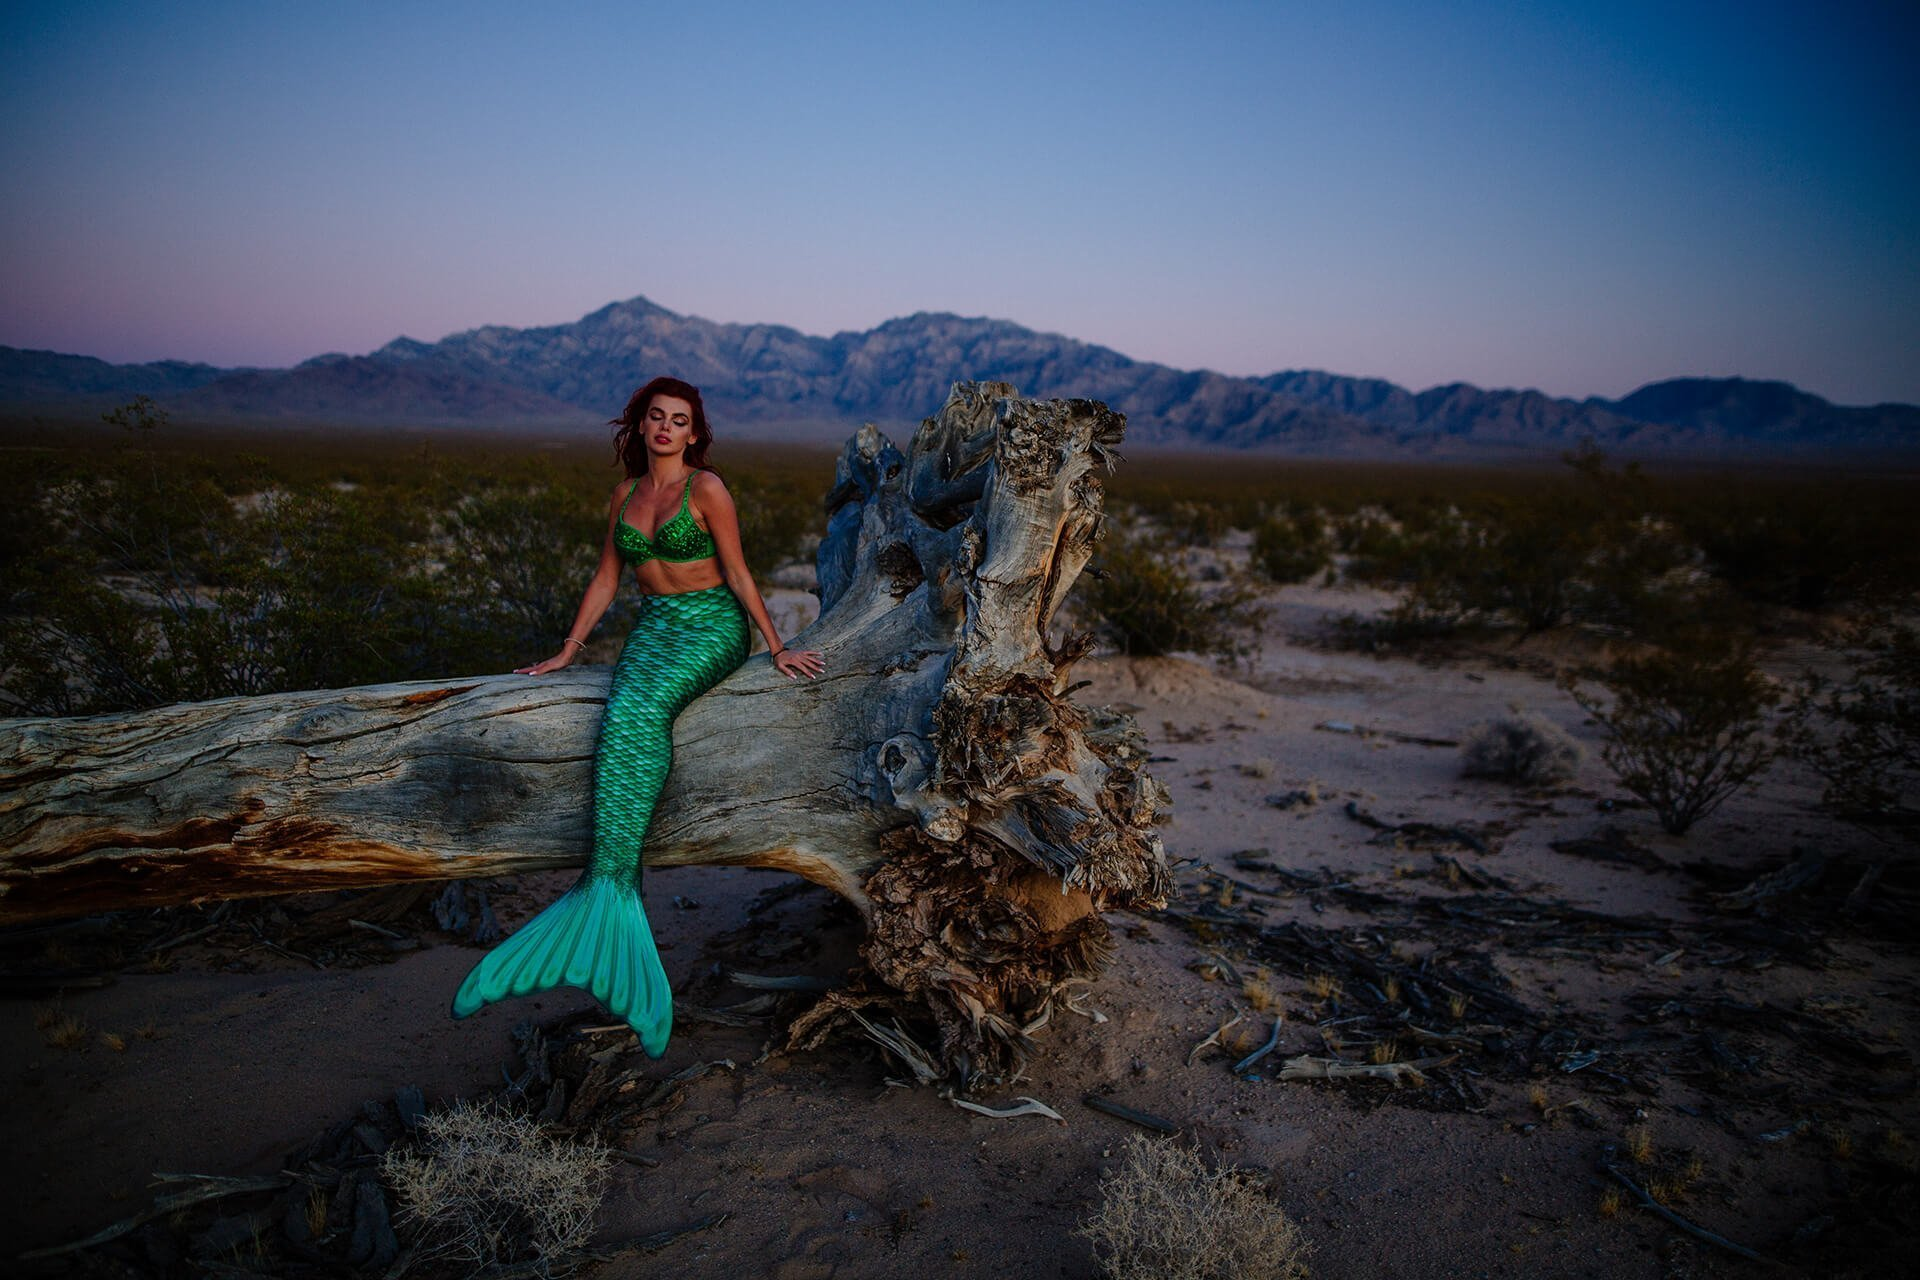 Mermaid Photoshoot LA Mojave Desert California 6